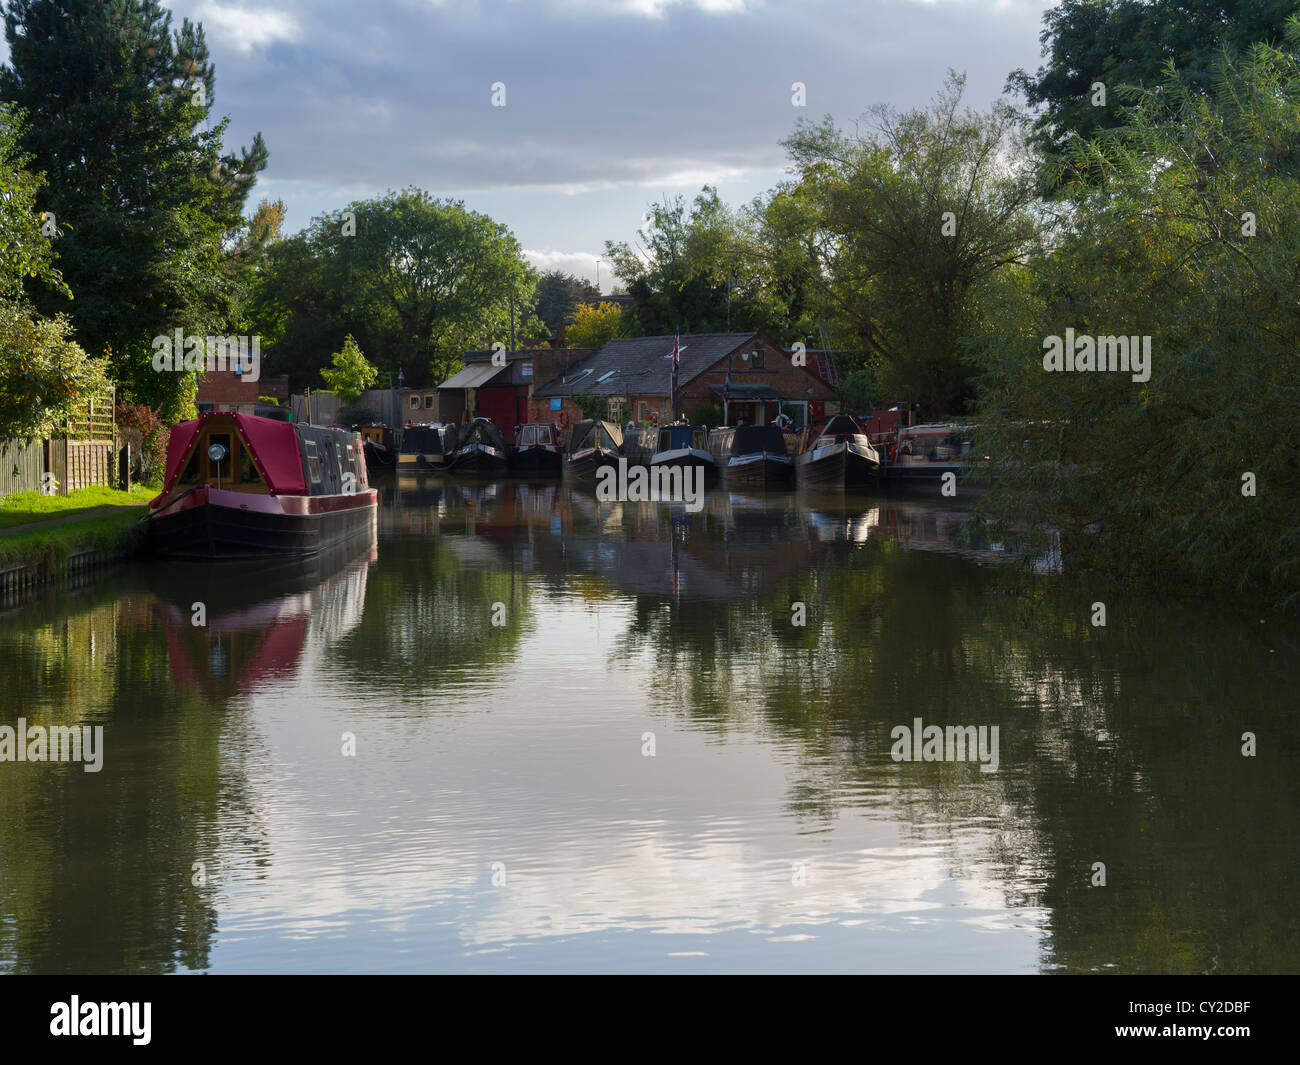 Narrowboats tied up on the Grand Union Canal at Blisworth, Northamptonshire. - Stock Image